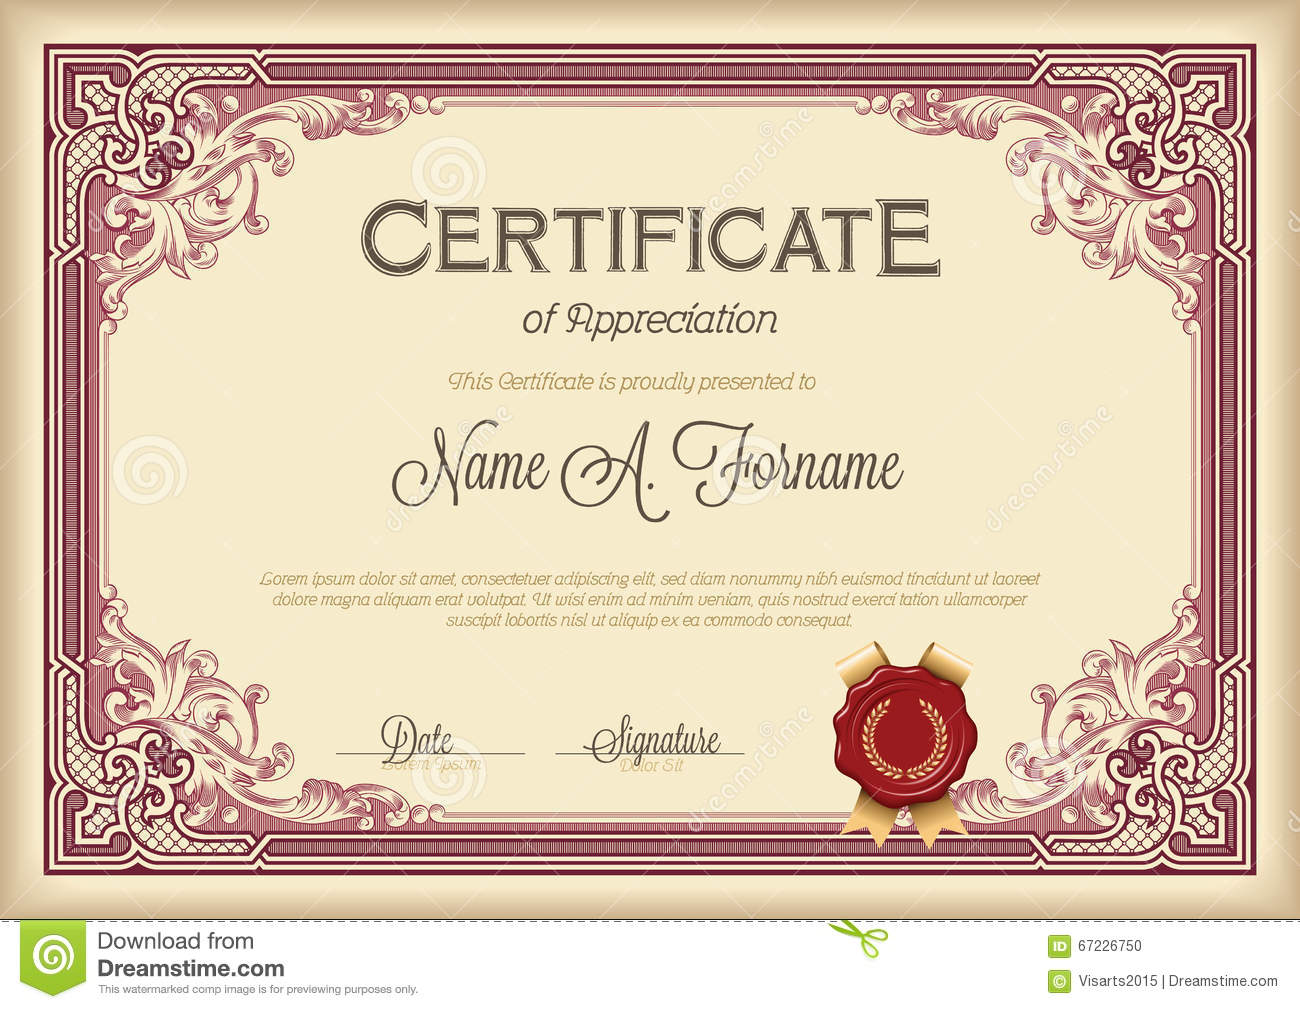 Certificate of appreciation vintage floral frame stock vector certificate of appreciation vintage floral frame yelopaper Choice Image